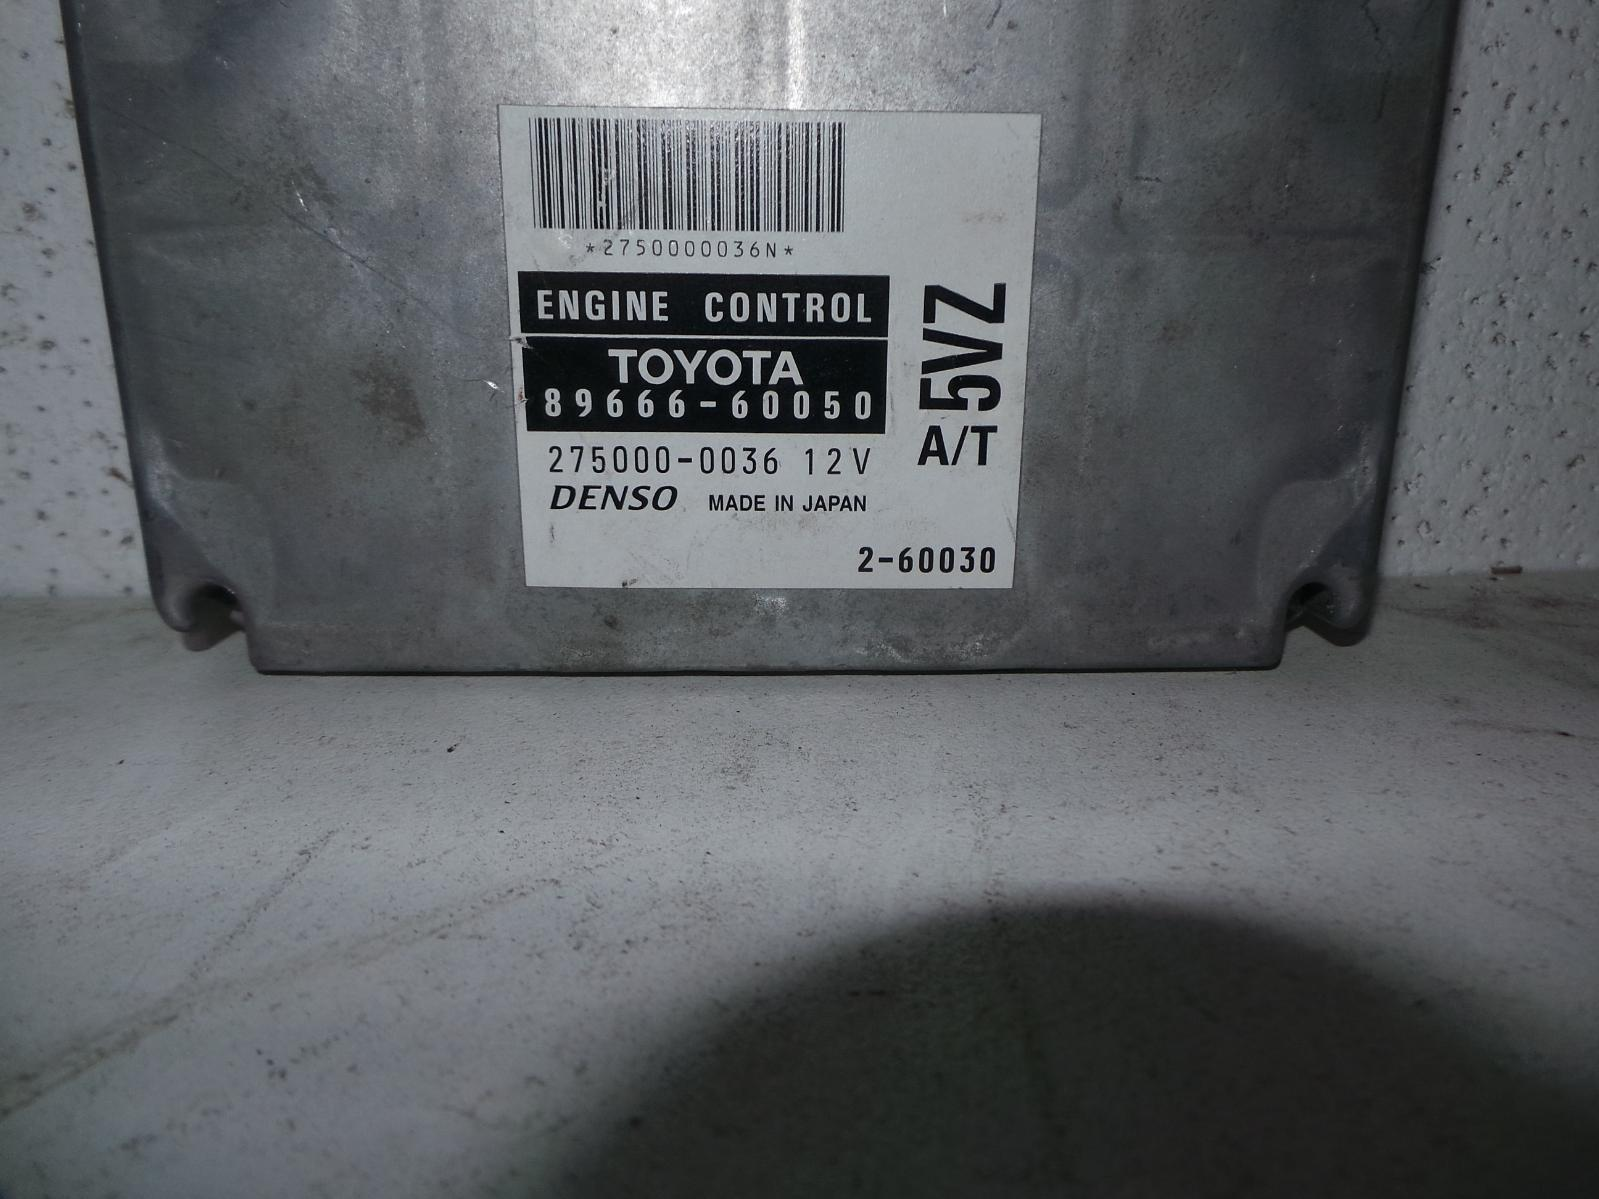 TOYOTA PRADO, Ecu, ENGINE ECU, 3.4, PETROL, AUTO, P/N 8966660050, ECU ONLY, 95 SERIES, 07/96-12/02